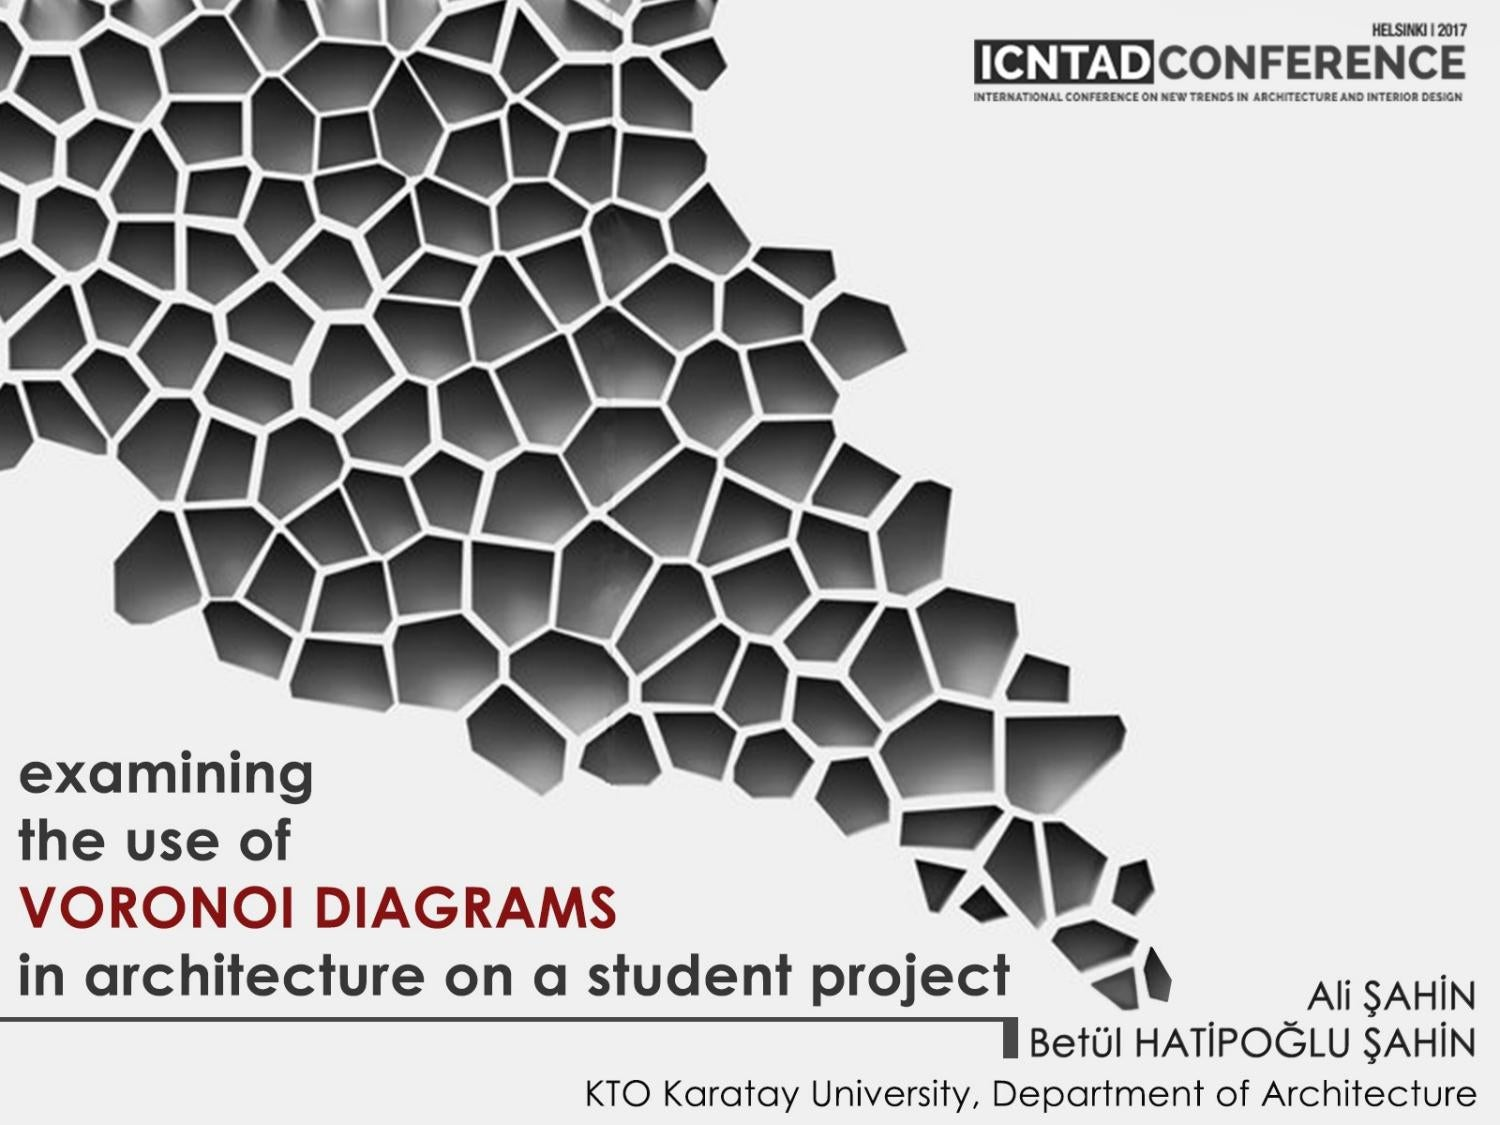 examining the use of Voronoi Diagrams in architecture on a